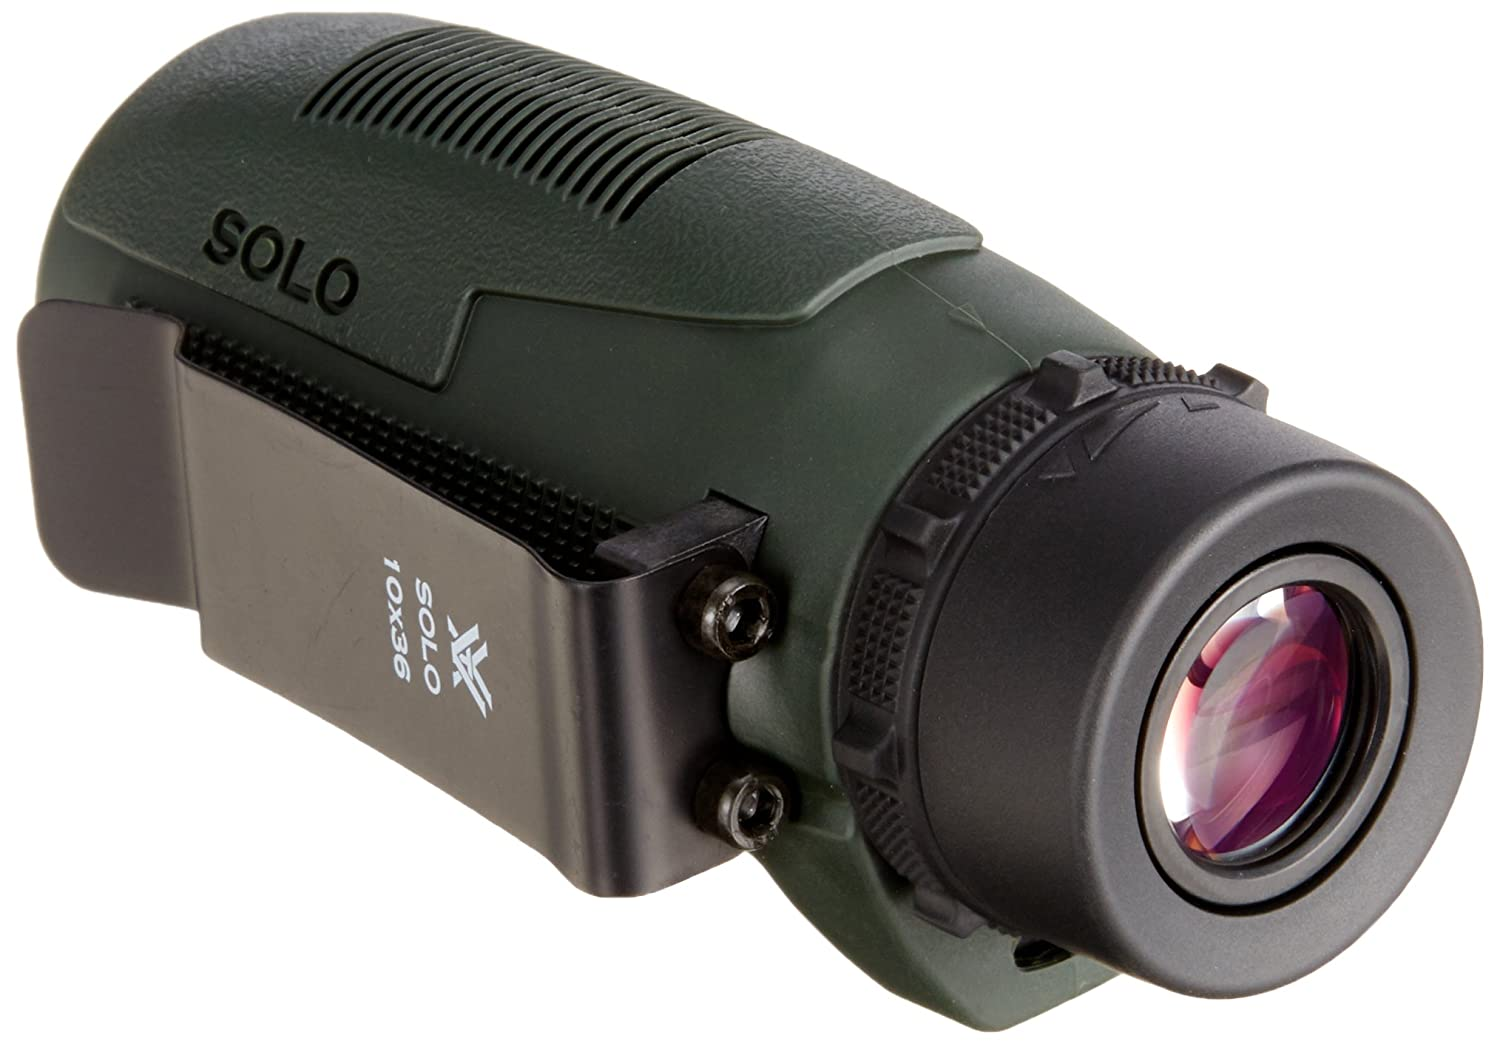 Vortex Solo 10x36mm Monocular reiview